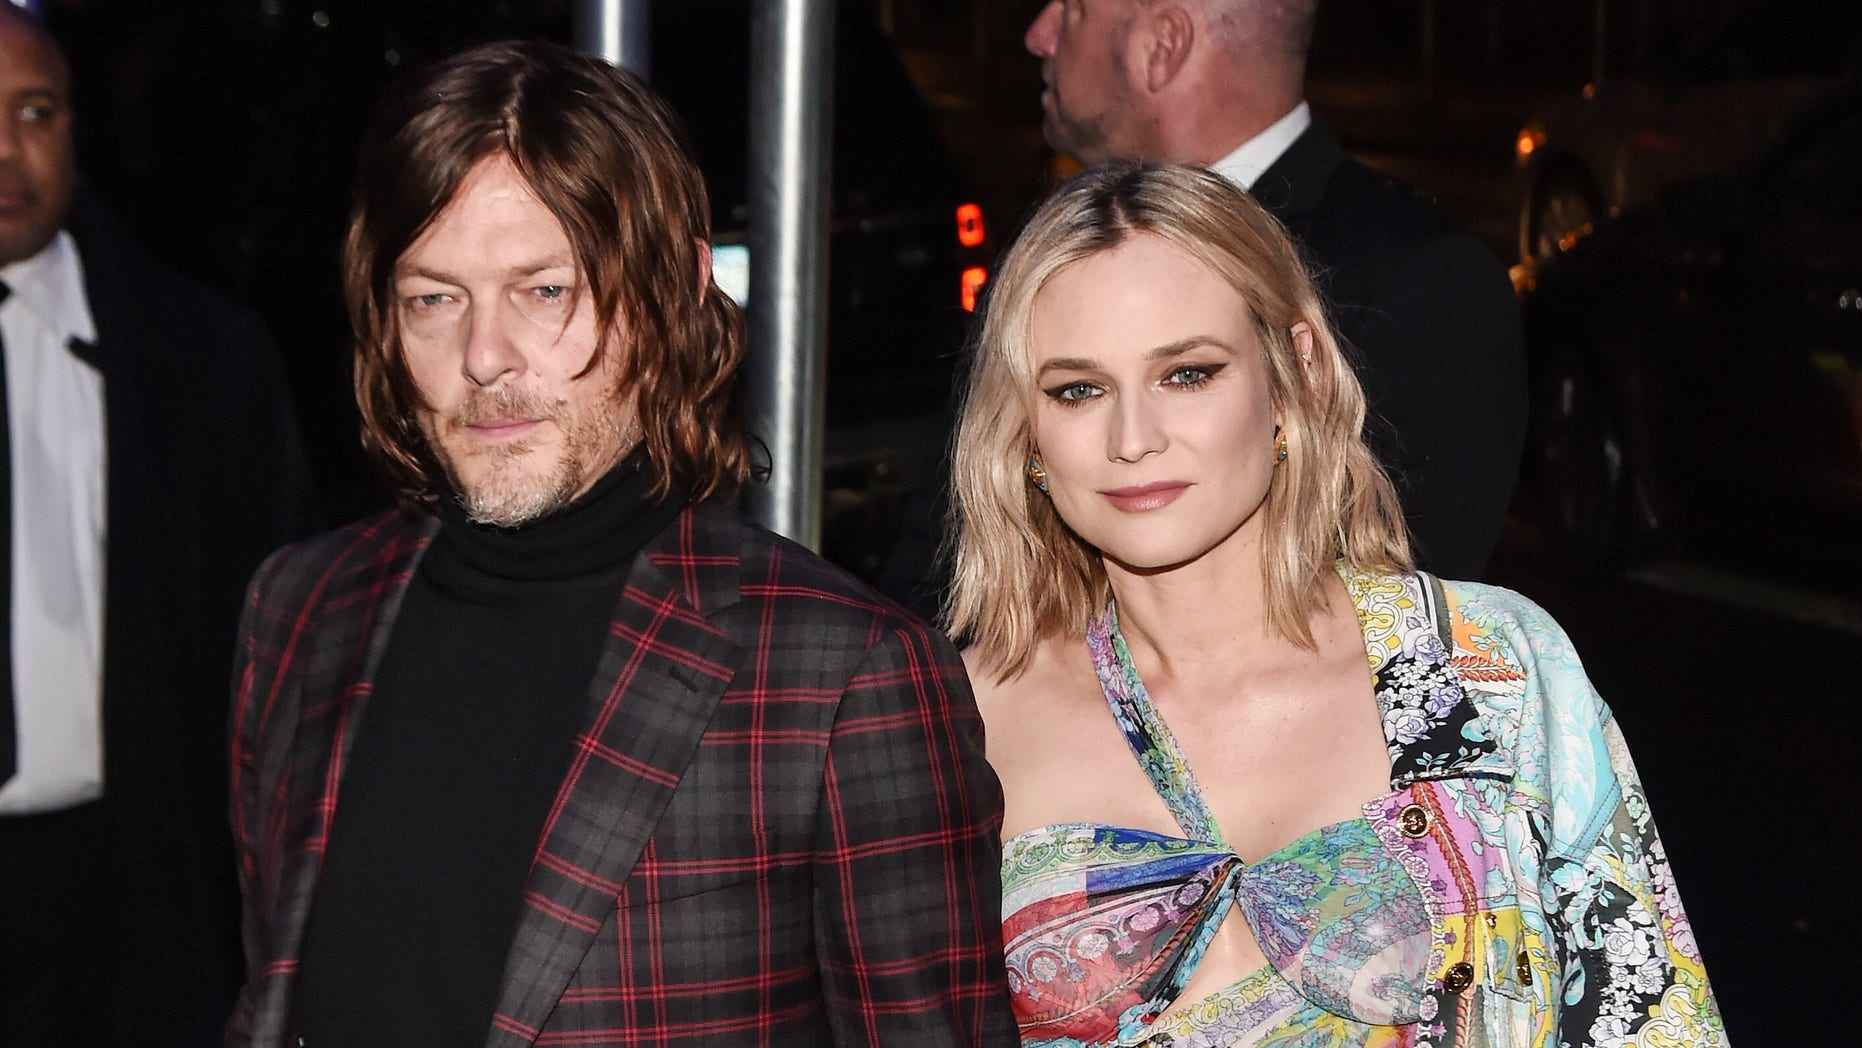 Norman Reedus shared the first photo of his newborn daughter with Diane Kruger.